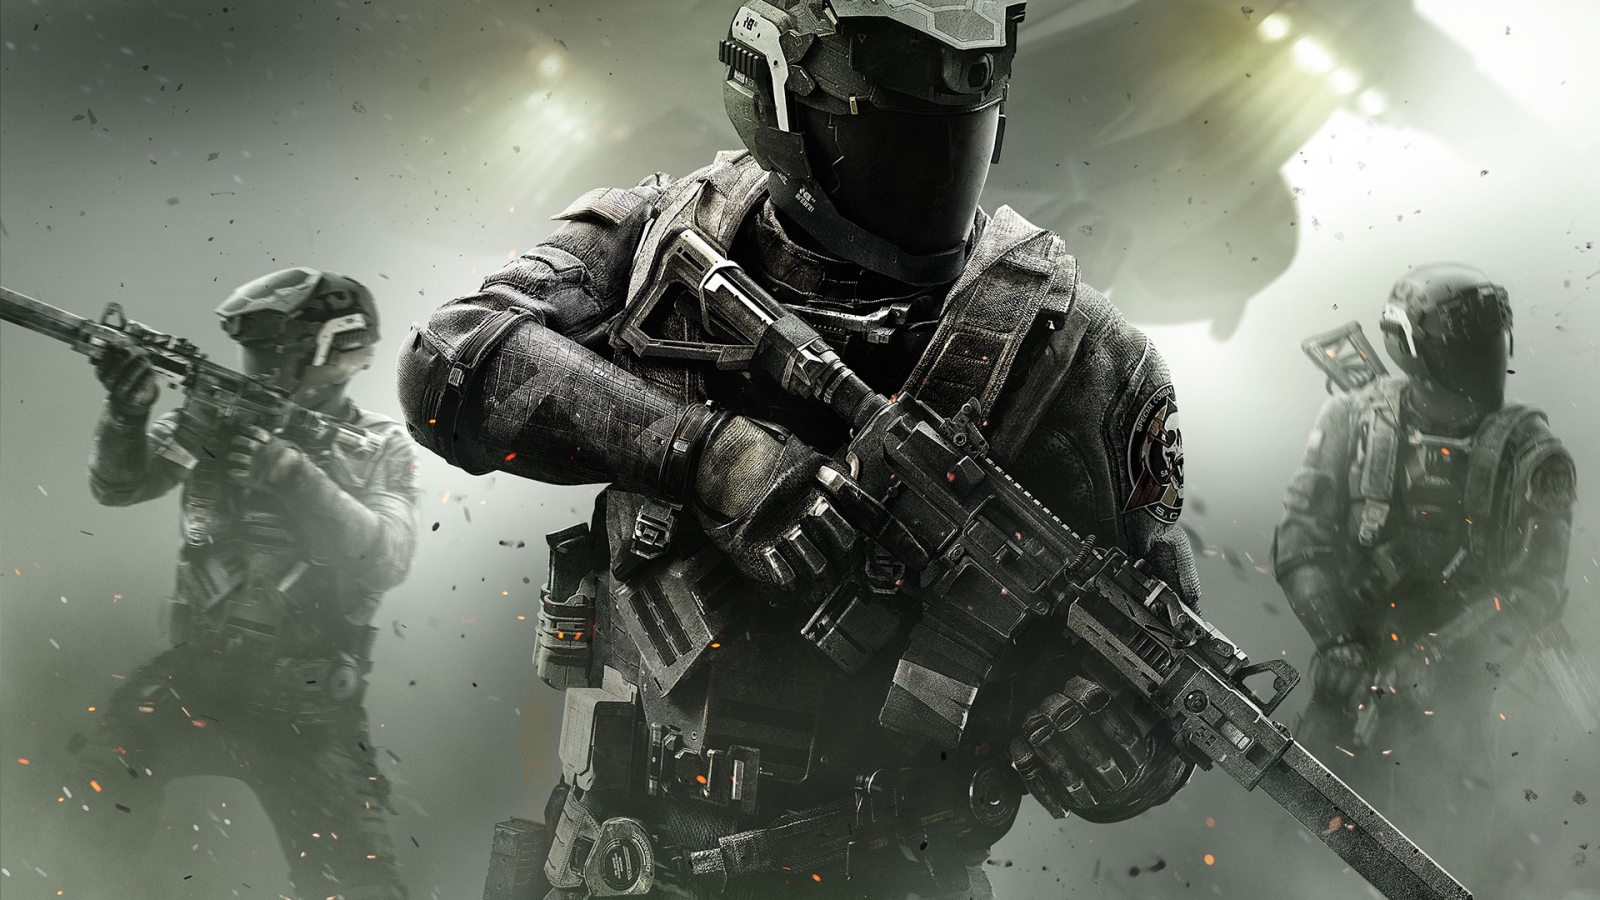 Call Of Duty movie signing up Sicario 2 director